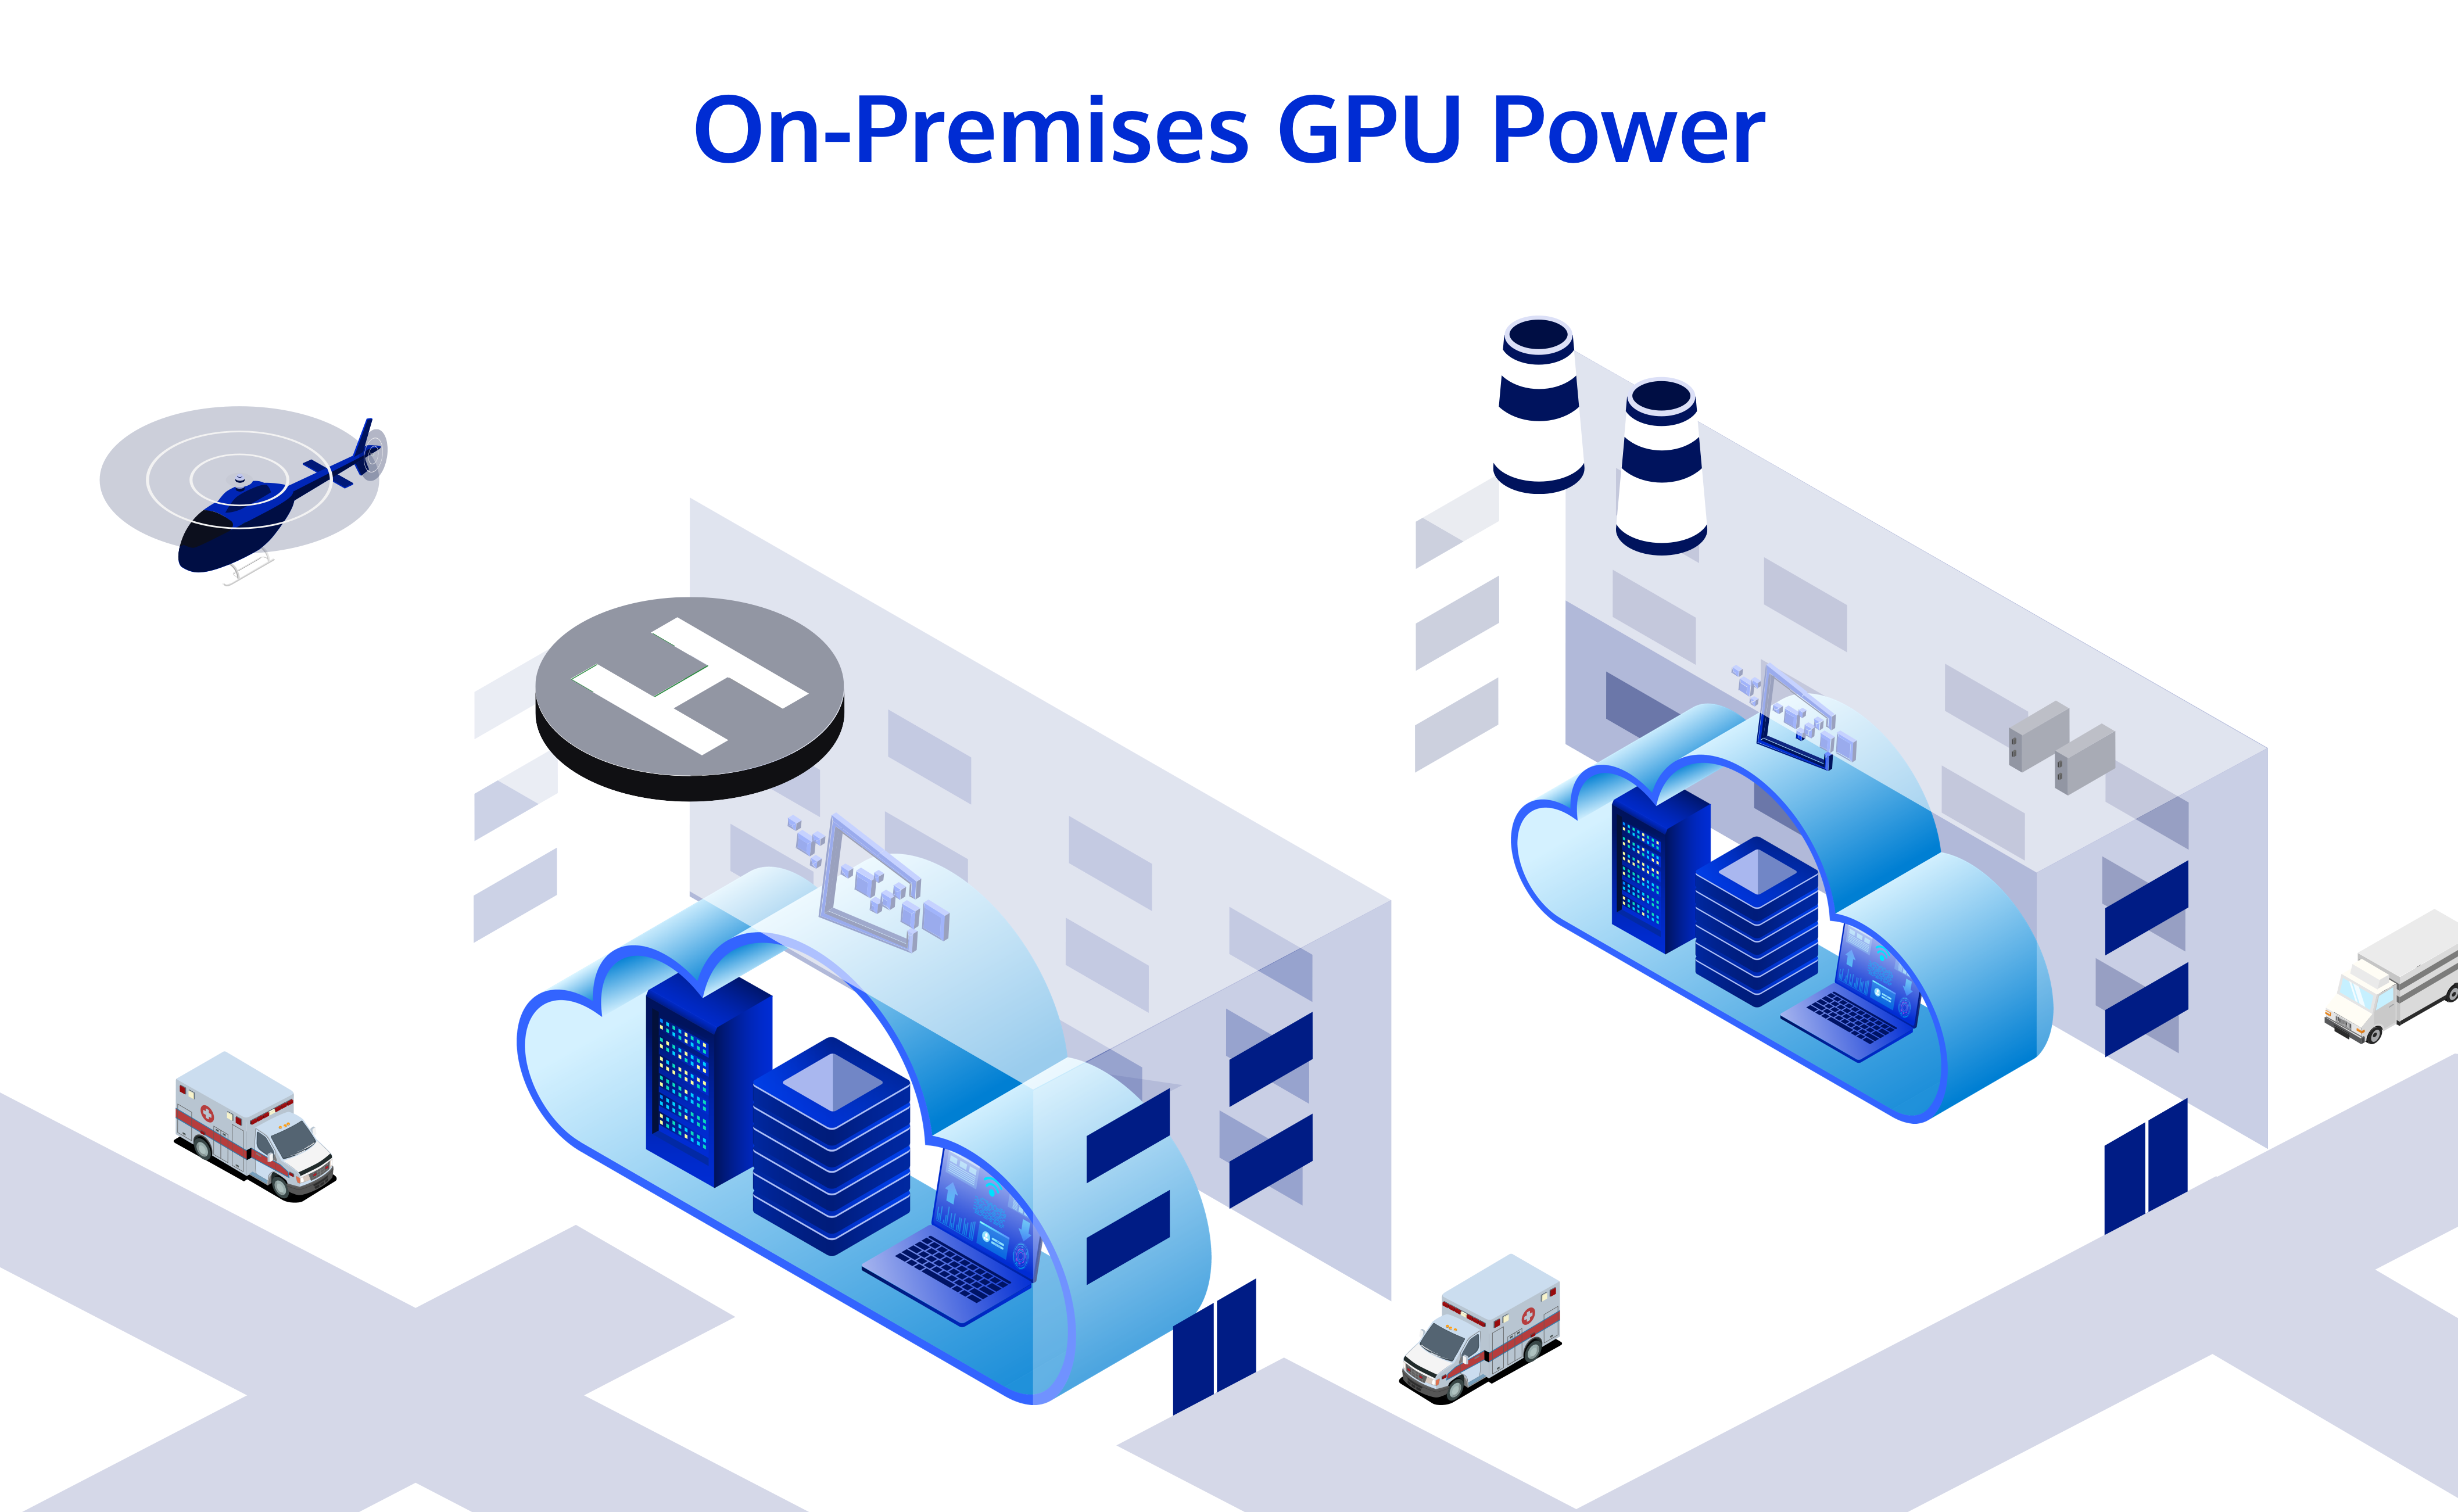 Greater speed and more power is guaranteed on-premises and in the data centre of your choice with Cloudalize's GPU Cloud.